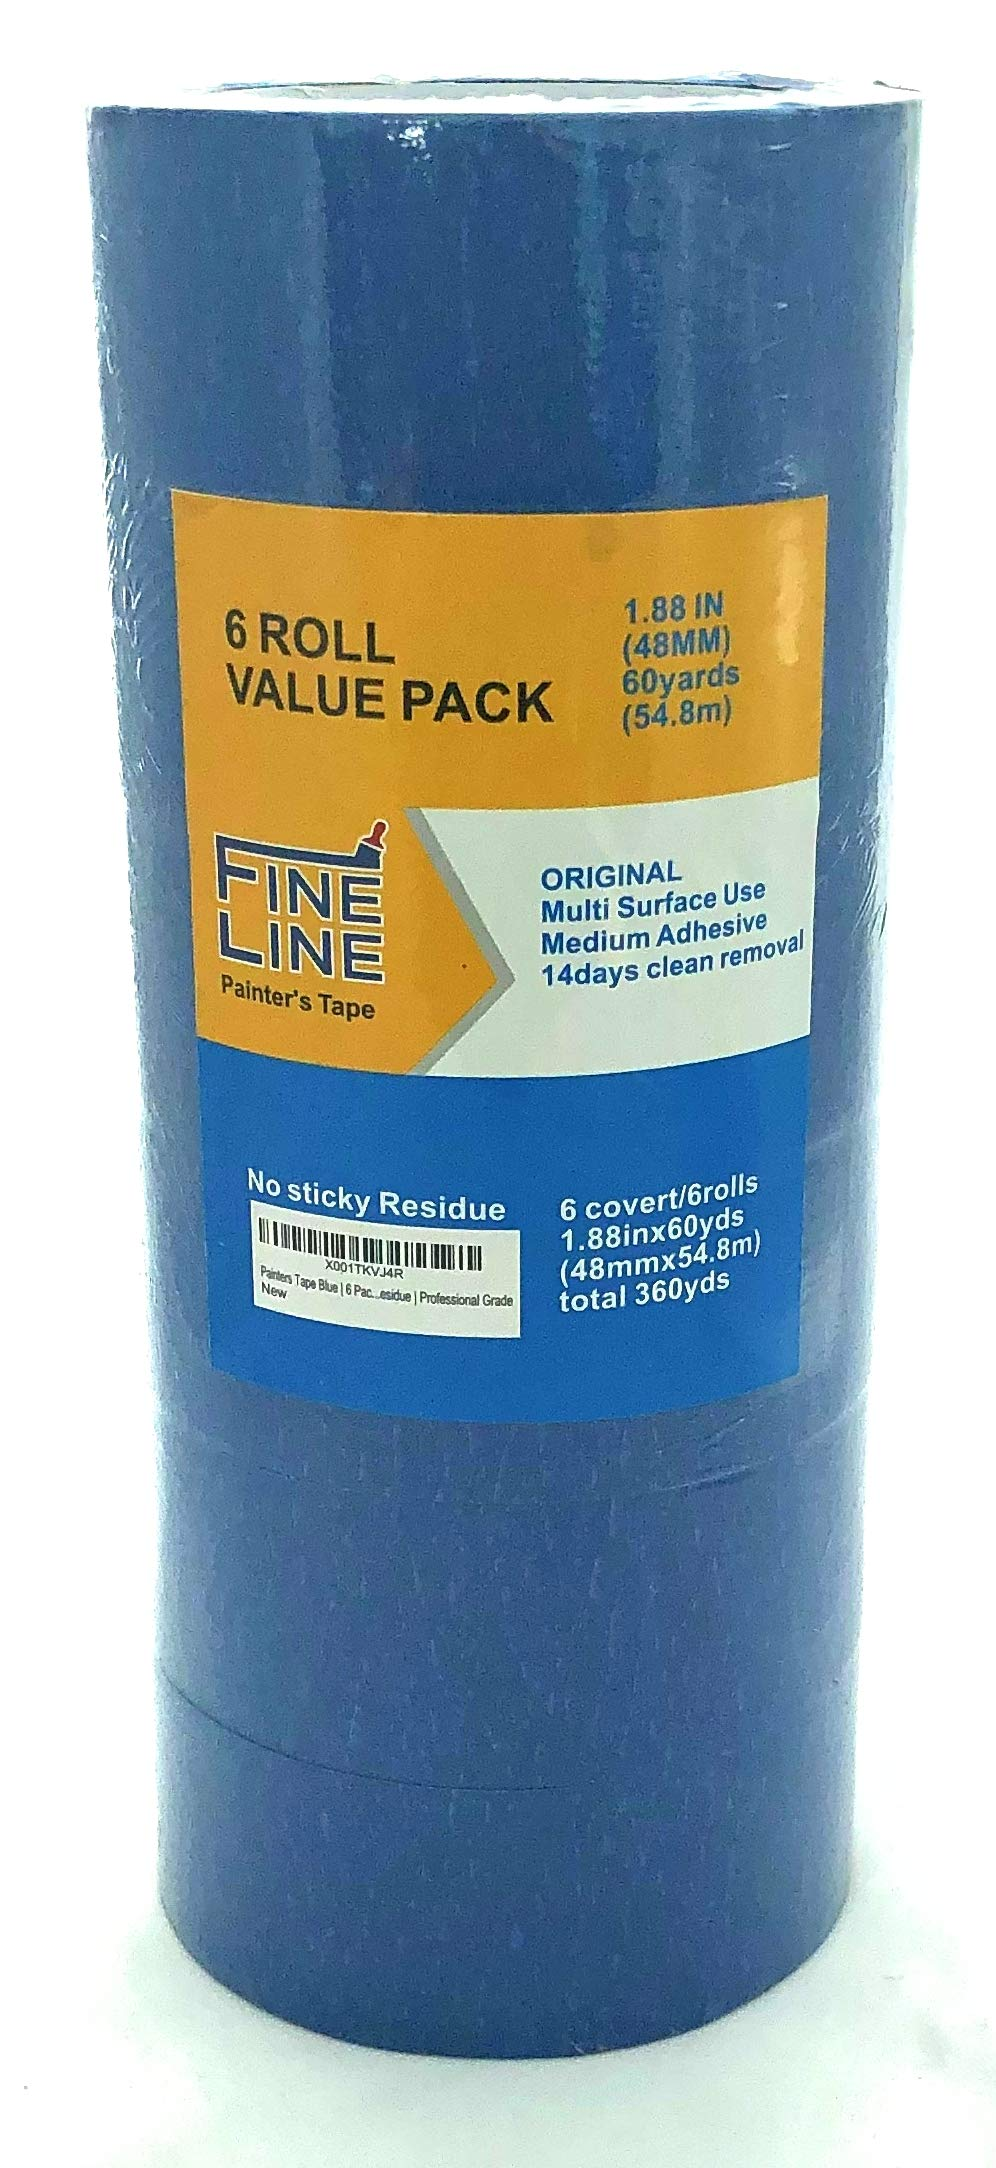 Painters Tape Blue | 6 Pack | 1.88 inch 60 Yards | Fine Line | Clean Release | Medium Adhesive | Sticks Well Leaves No Residue | Professional Grade